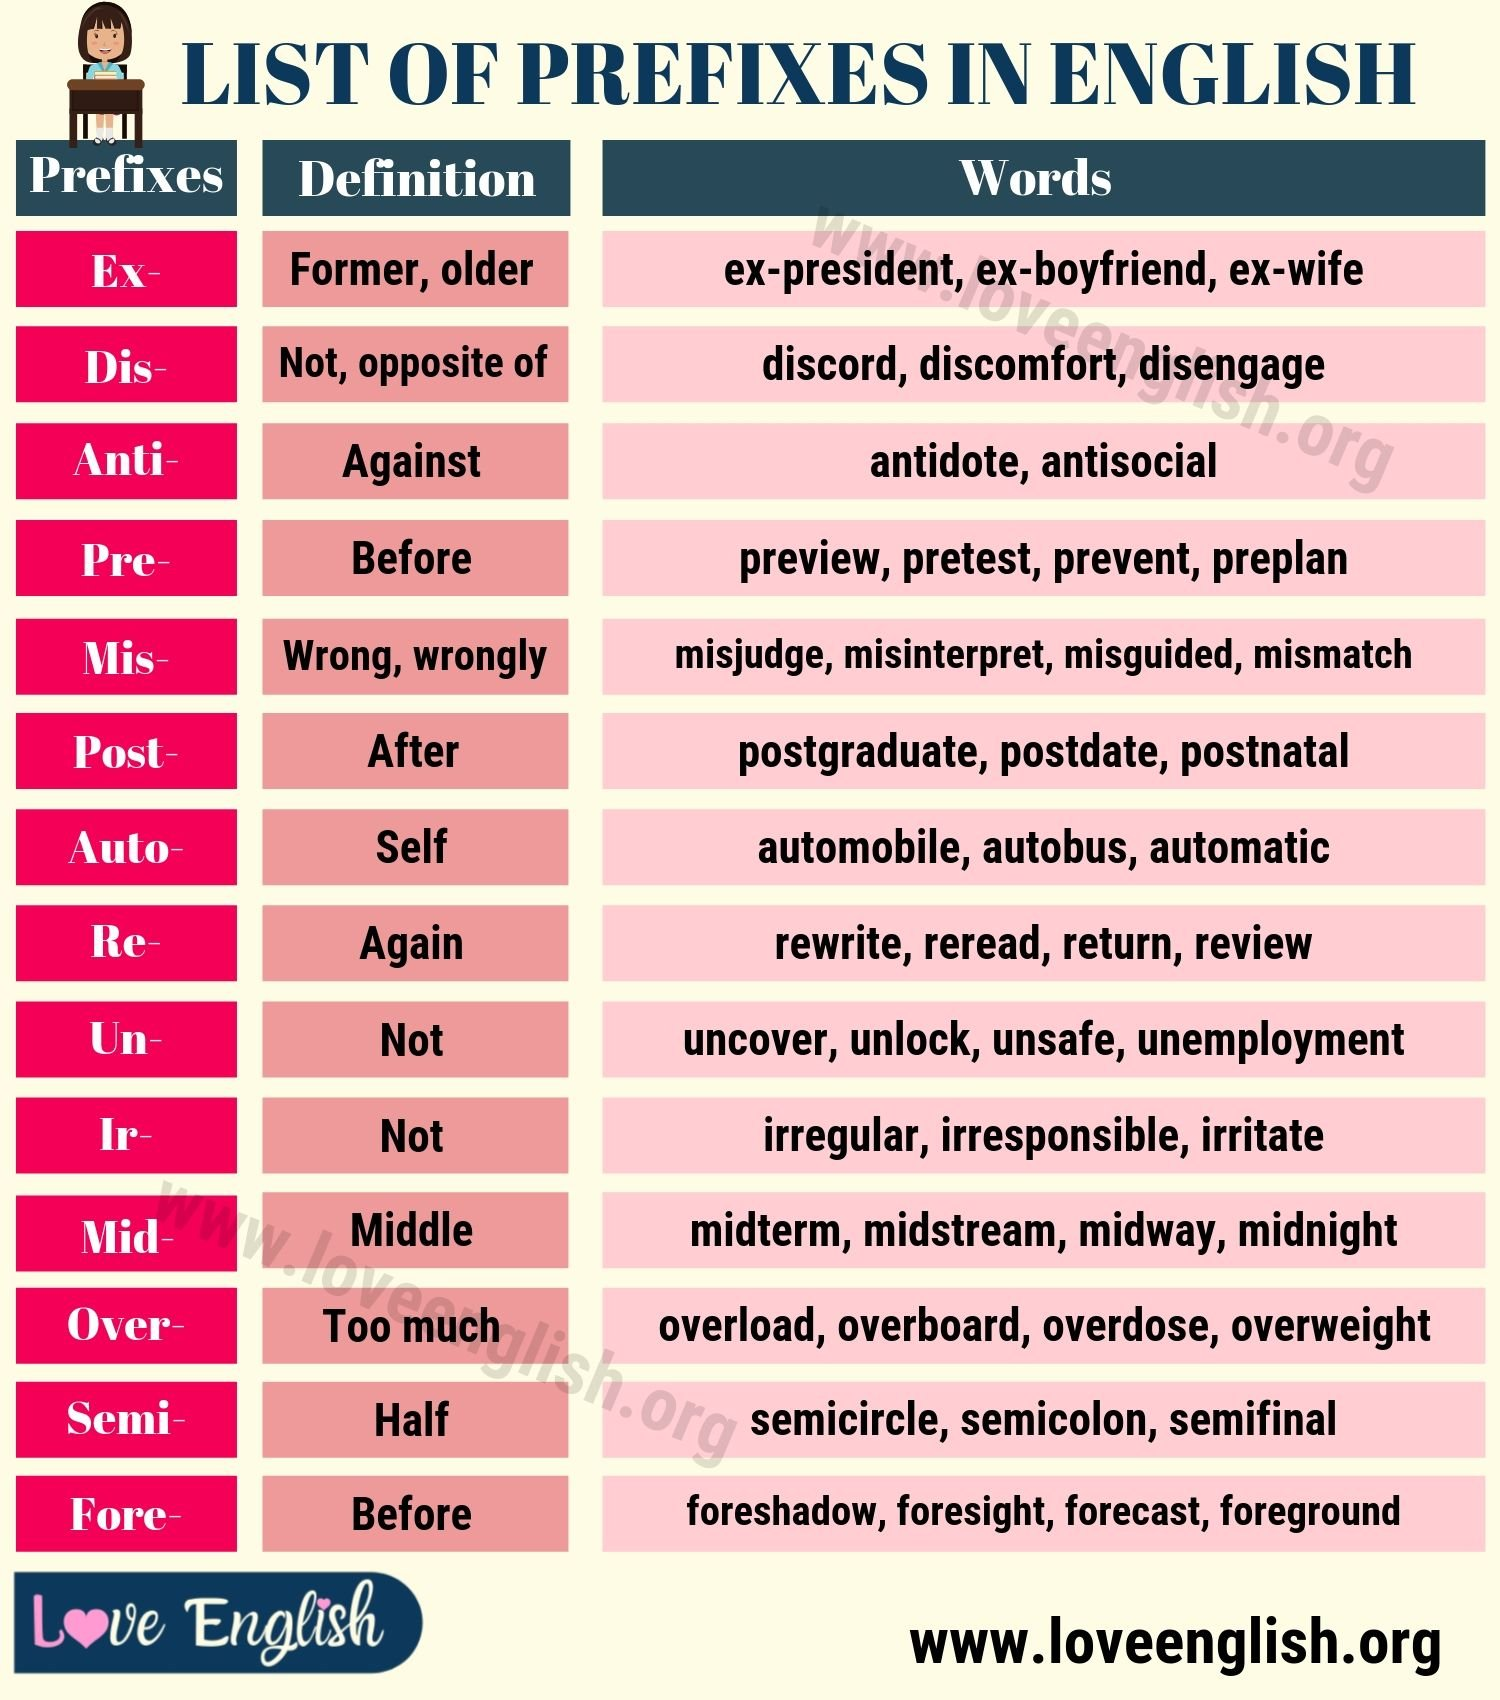 List of Prefixes: A Big List of 20 Prefixes and Their